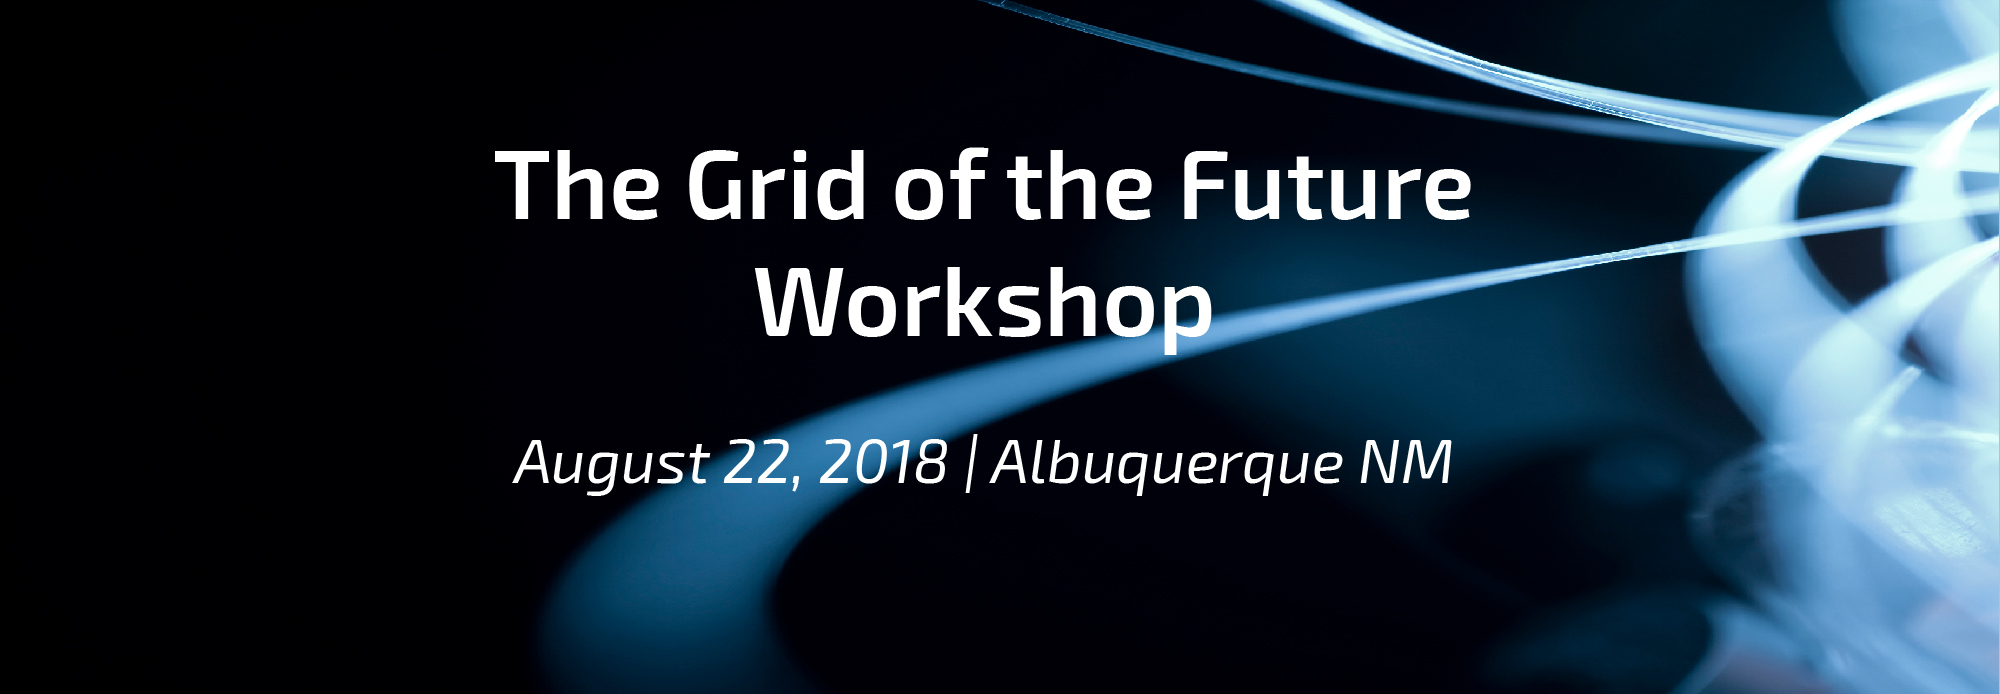 The Grid of the Future Workshop hosted by Sandia National Laboratories on August 22, 2018, in Albuquerque, NM.